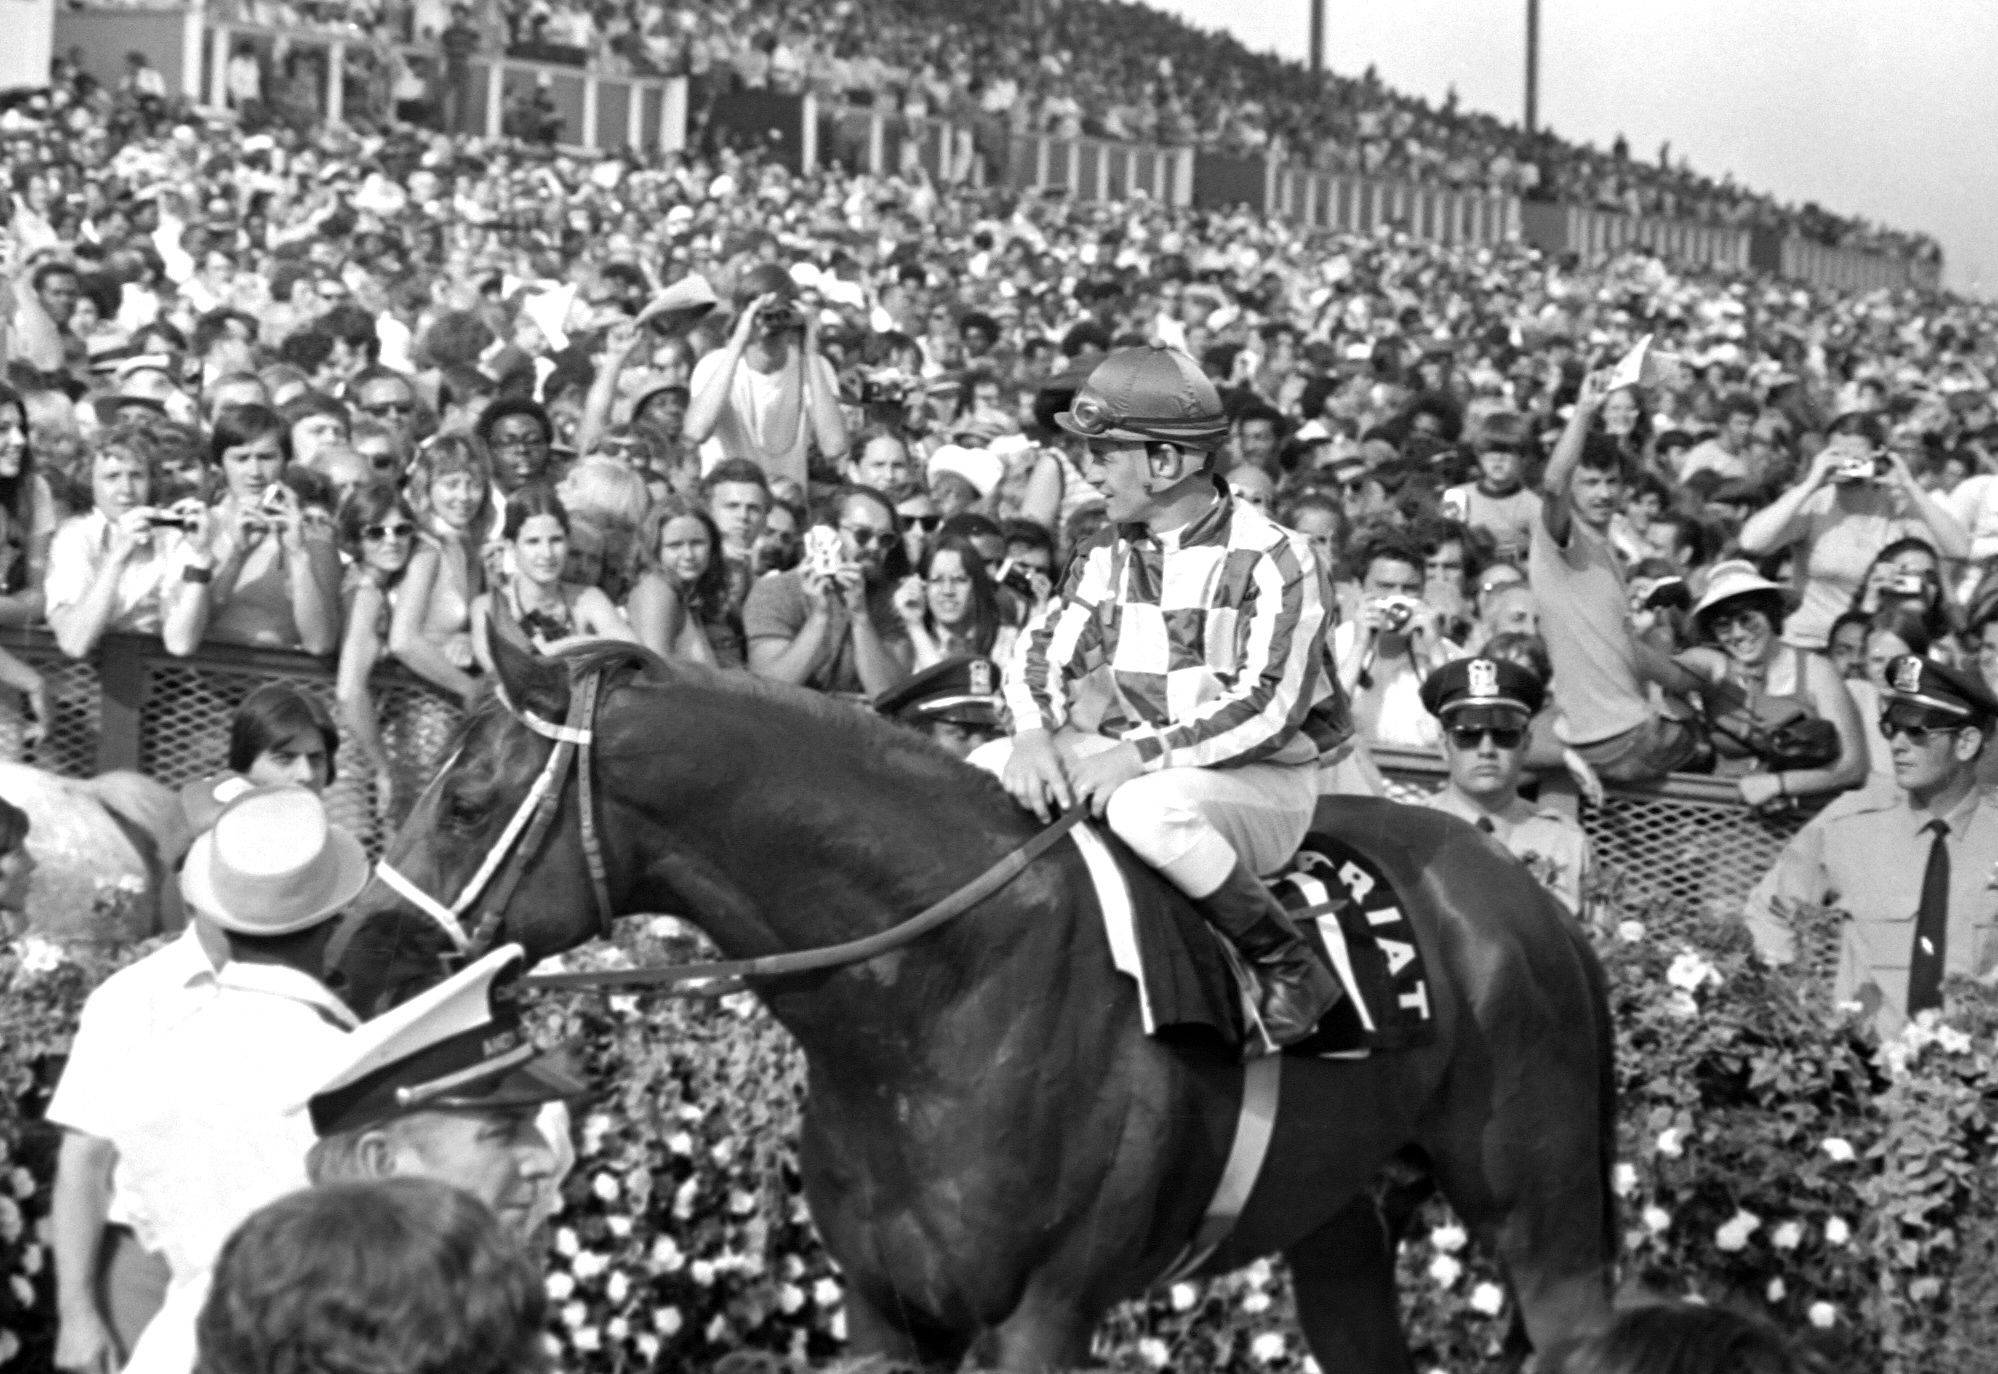 The legendary racehorse Secretariat visits Arlington Park for the Arlington Invitational on June 30, 1973